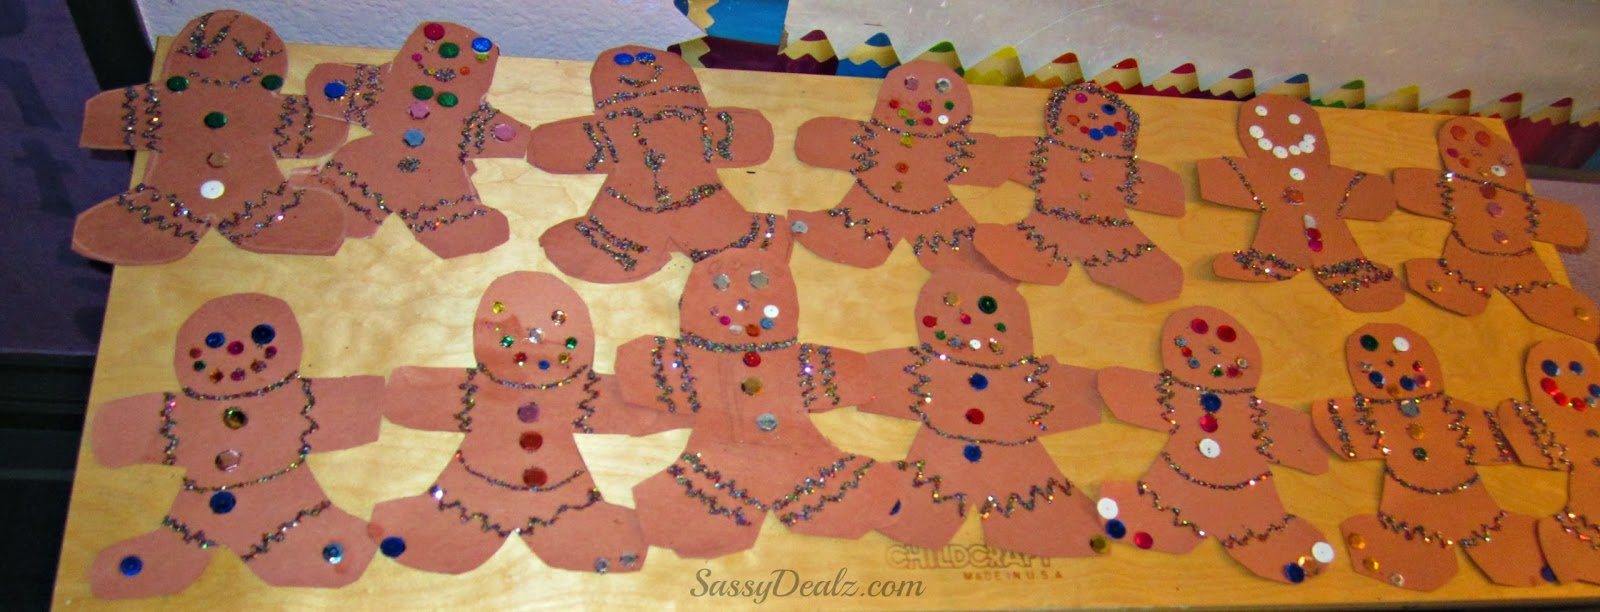 Gingerbread Man Art Activity 113